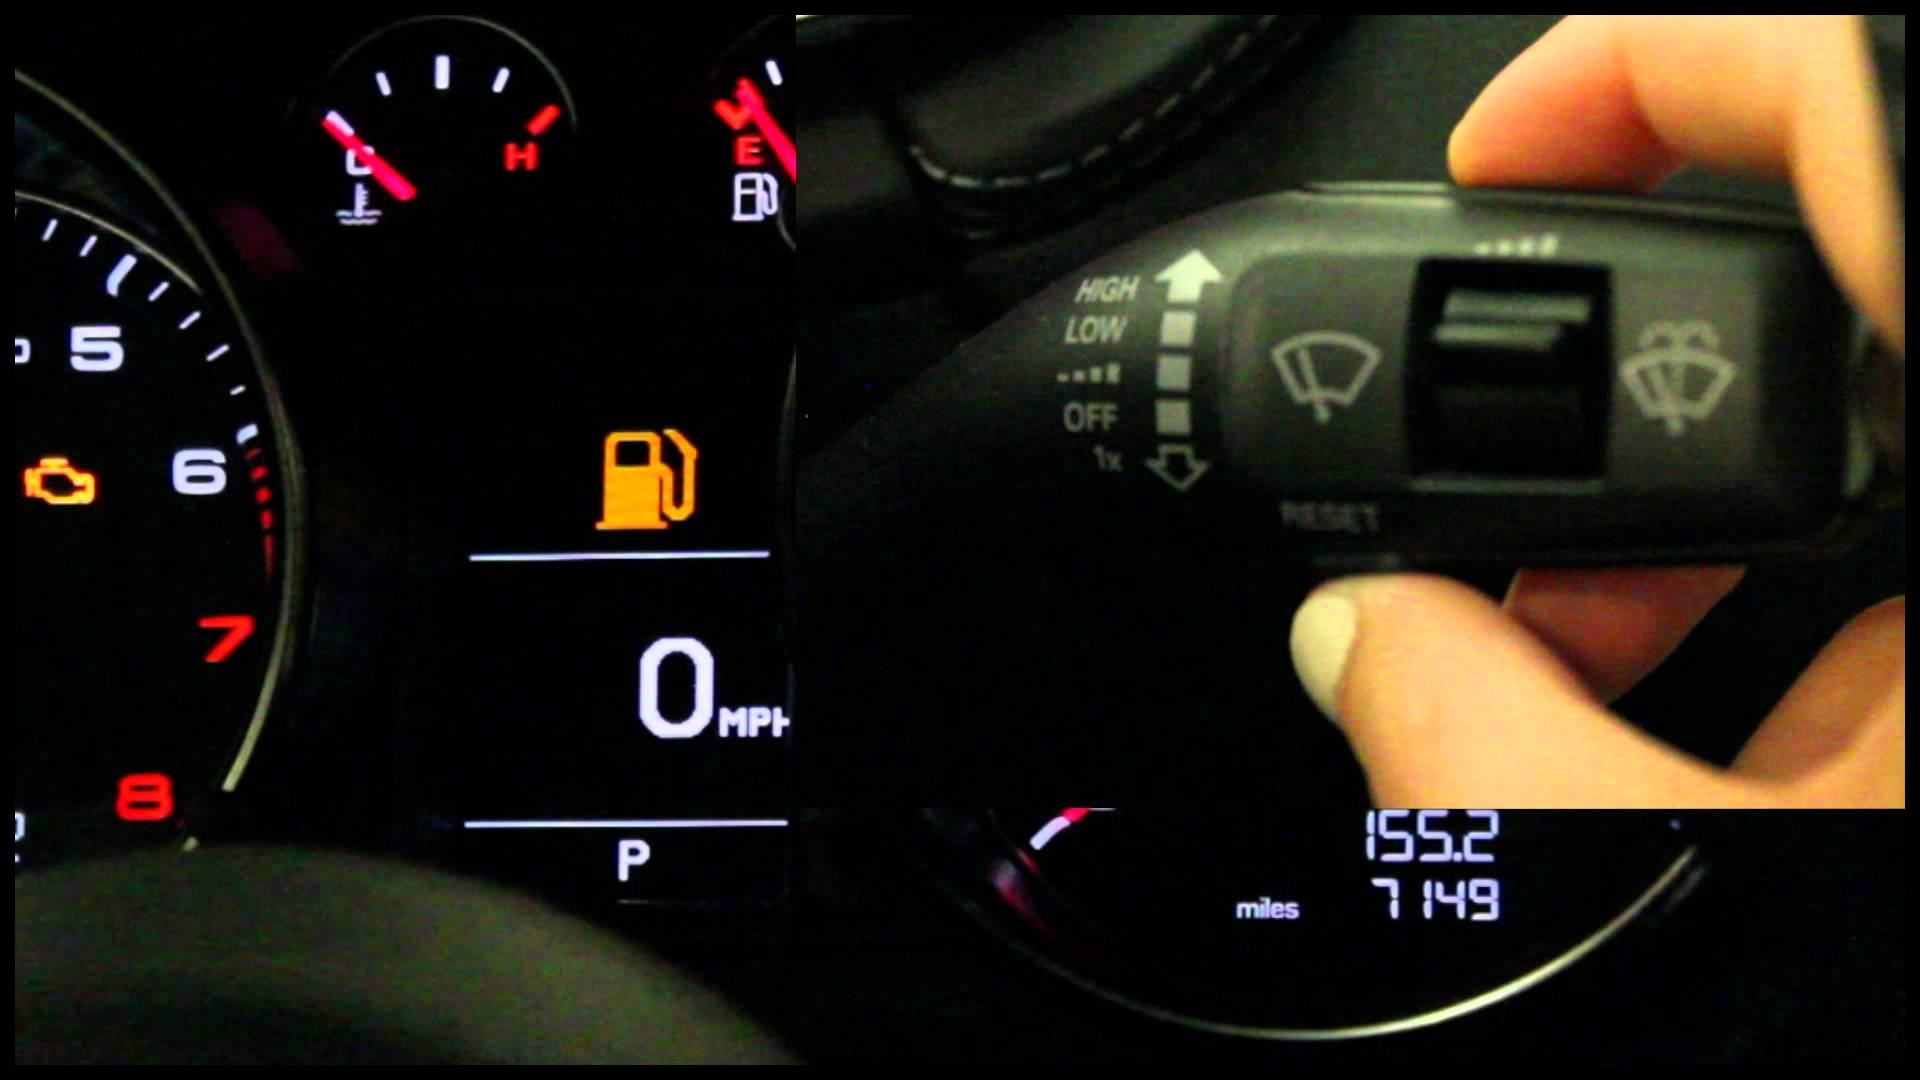 Audi North Scottsdale Resetting your TPMS on your Audi TT or Audi R8